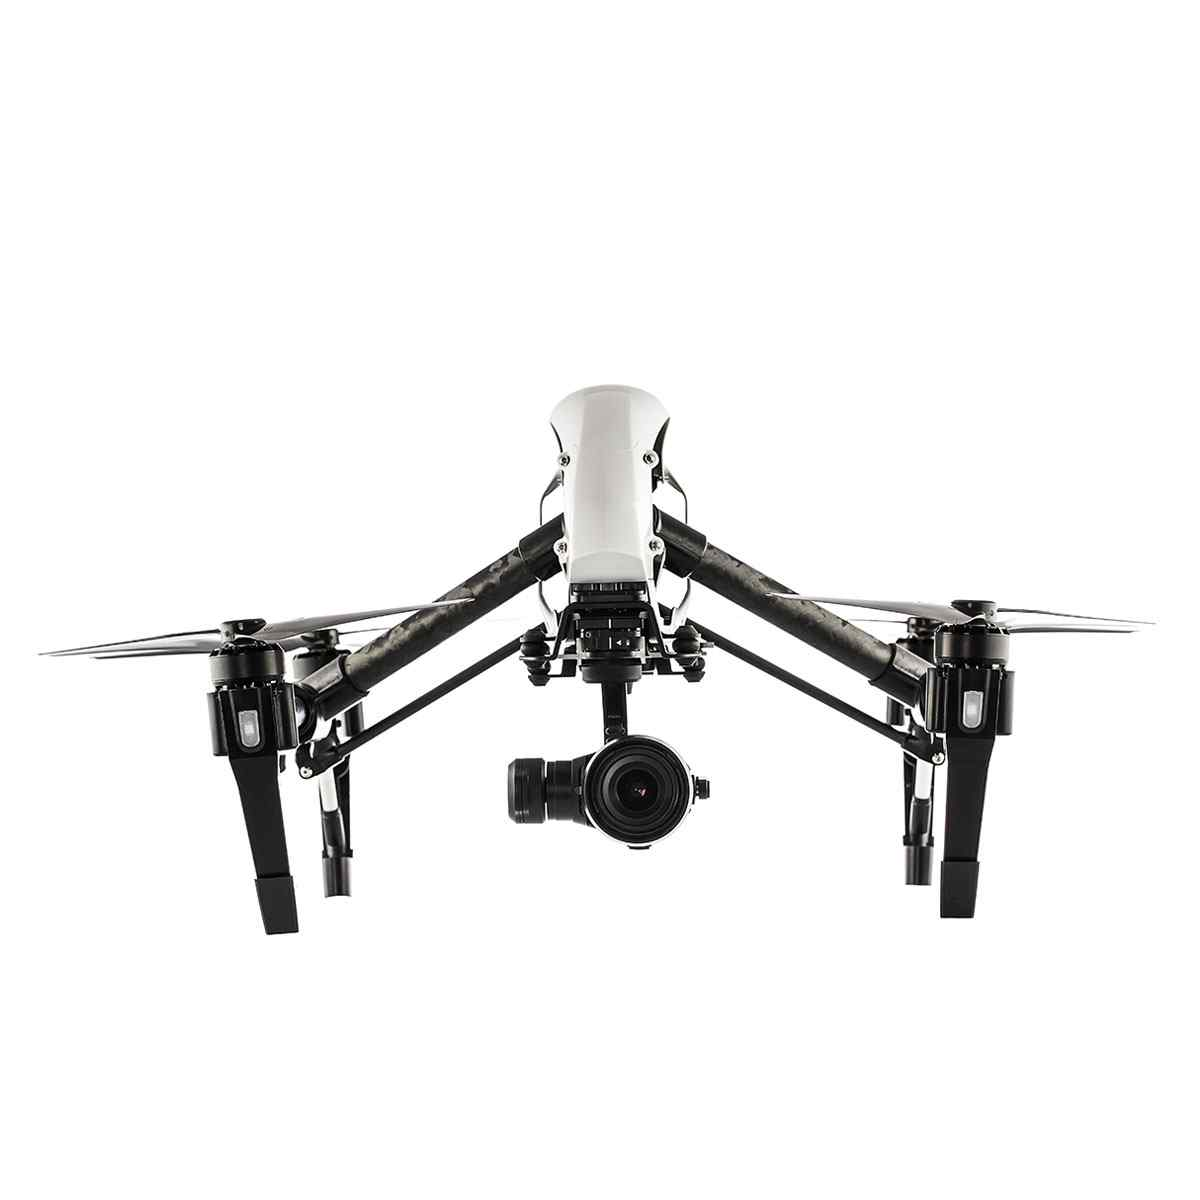 https://i2.wp.com/eurodrone.online/wp-content/uploads/2017/04/products_08.jpg?fit=1200%2C1200&ssl=1